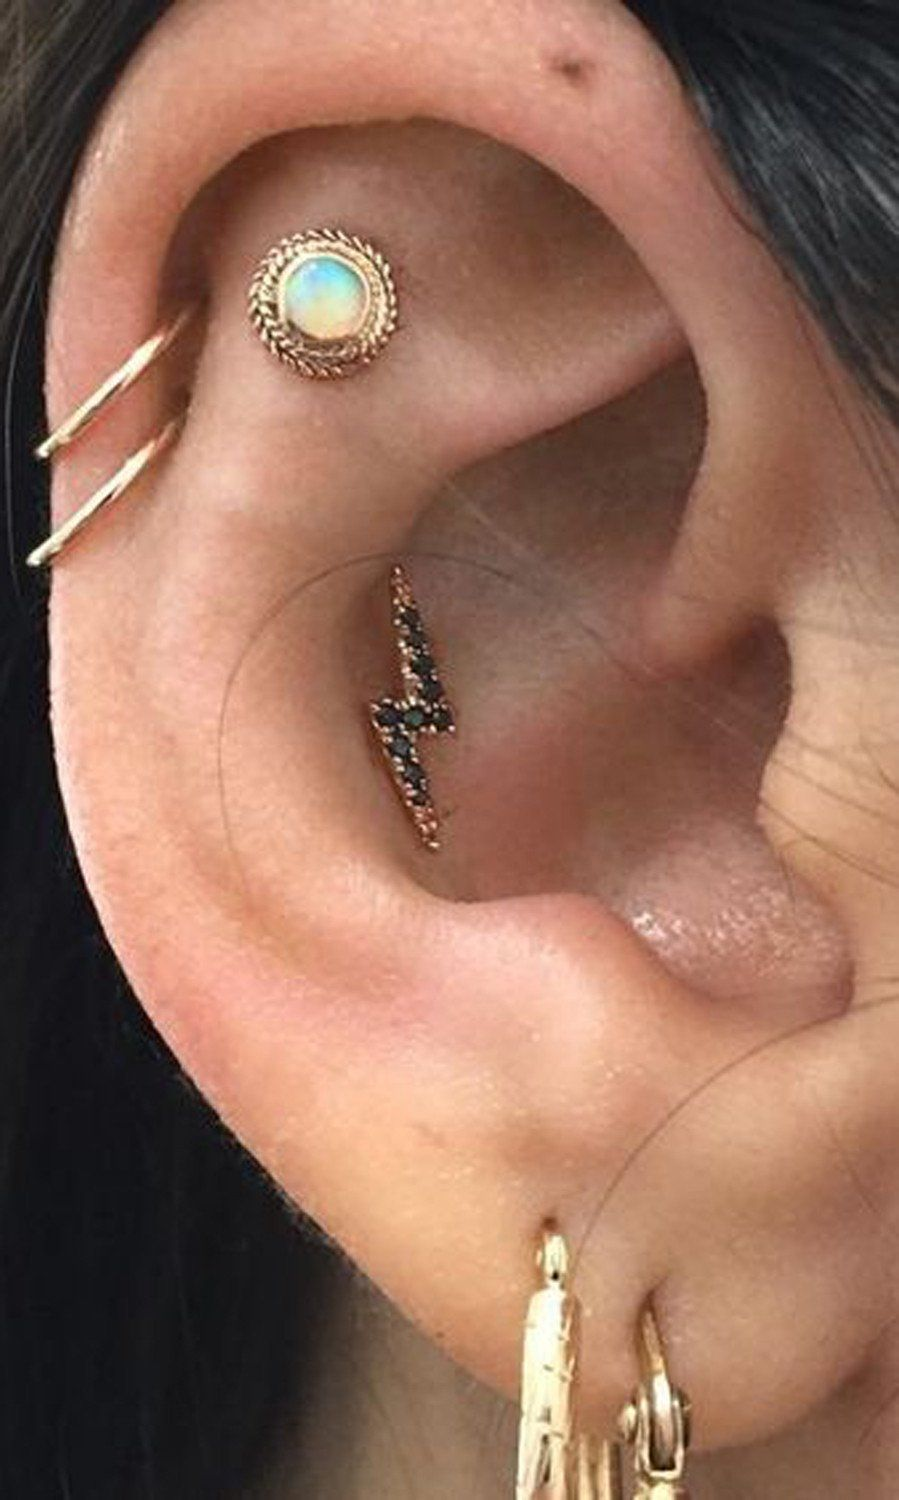 Earring piercing ideas  Steal These  Ear Piercing Ideas  Unique ear piercings Helix hoop